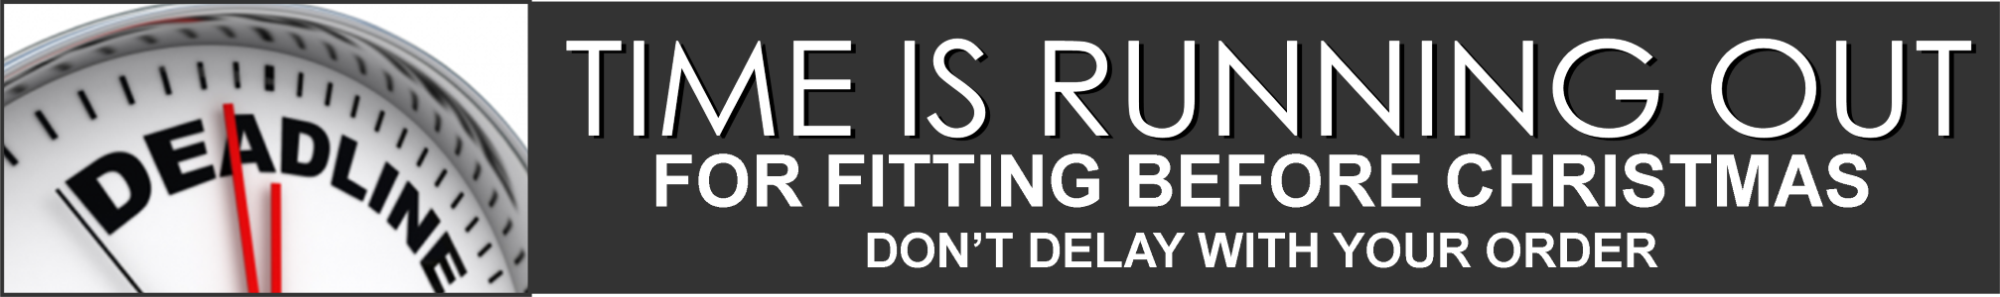 Time is running out to get you fitted before Christmas.